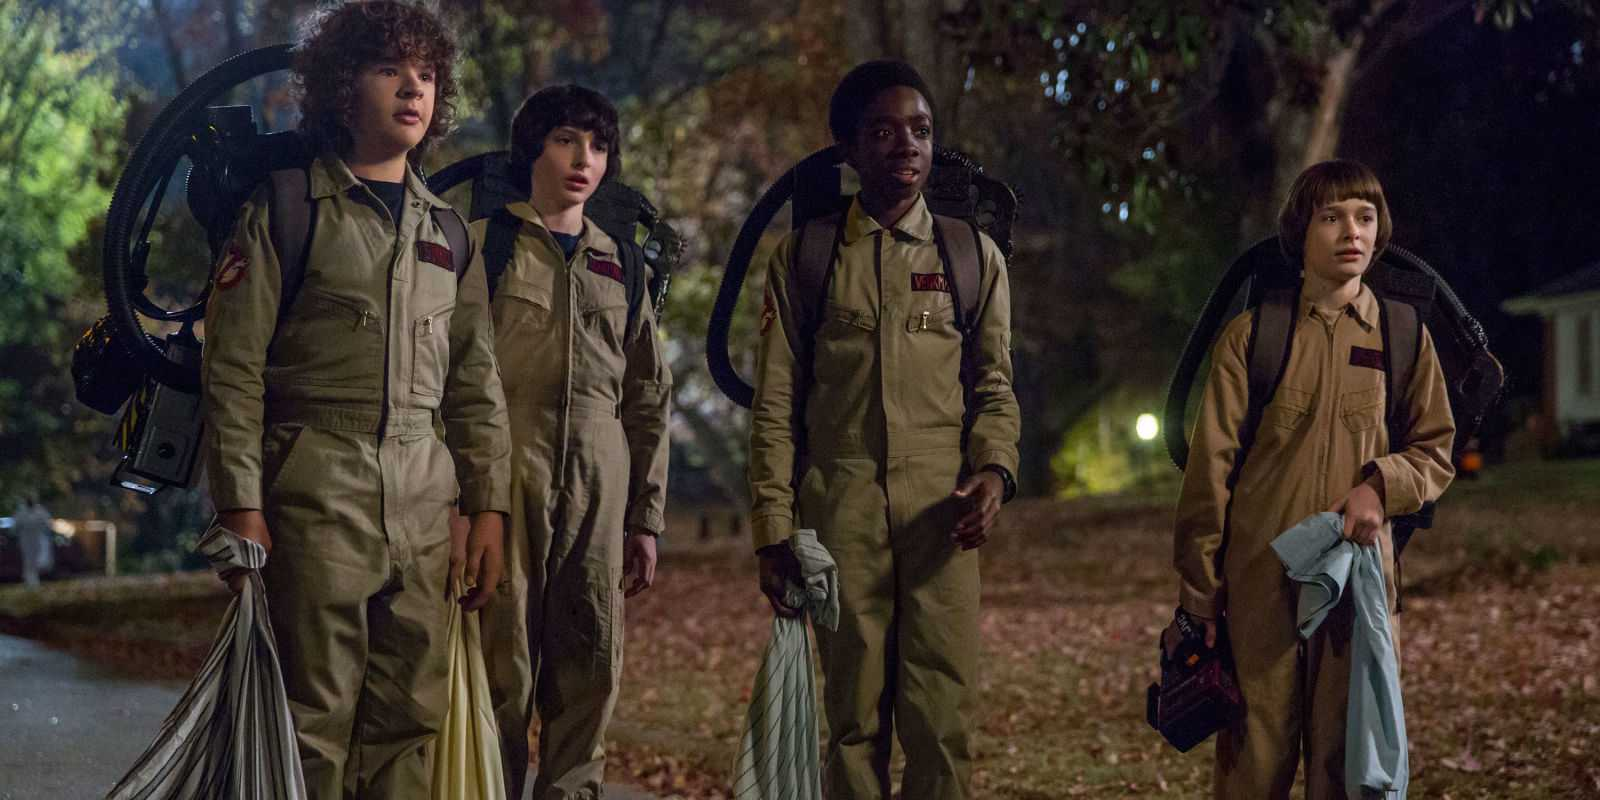 'Stranger Things' Will Get A Third Season, According To Creators | Stranger Things